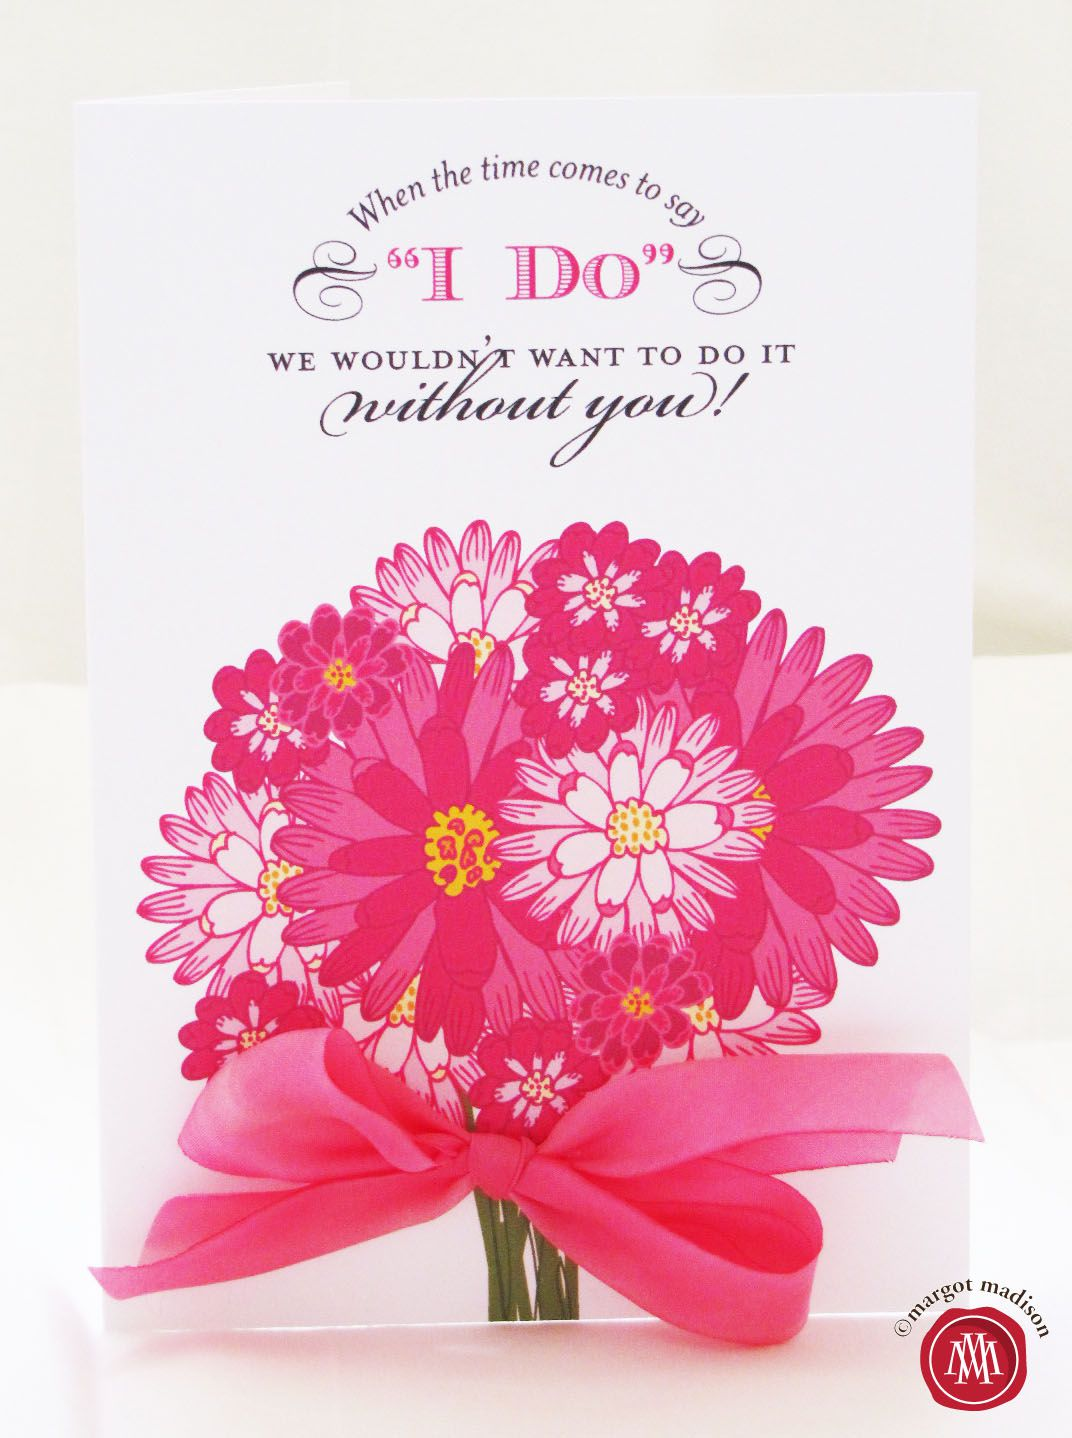 19 Free, Printable Will You Be My Bridesmaid? Cards